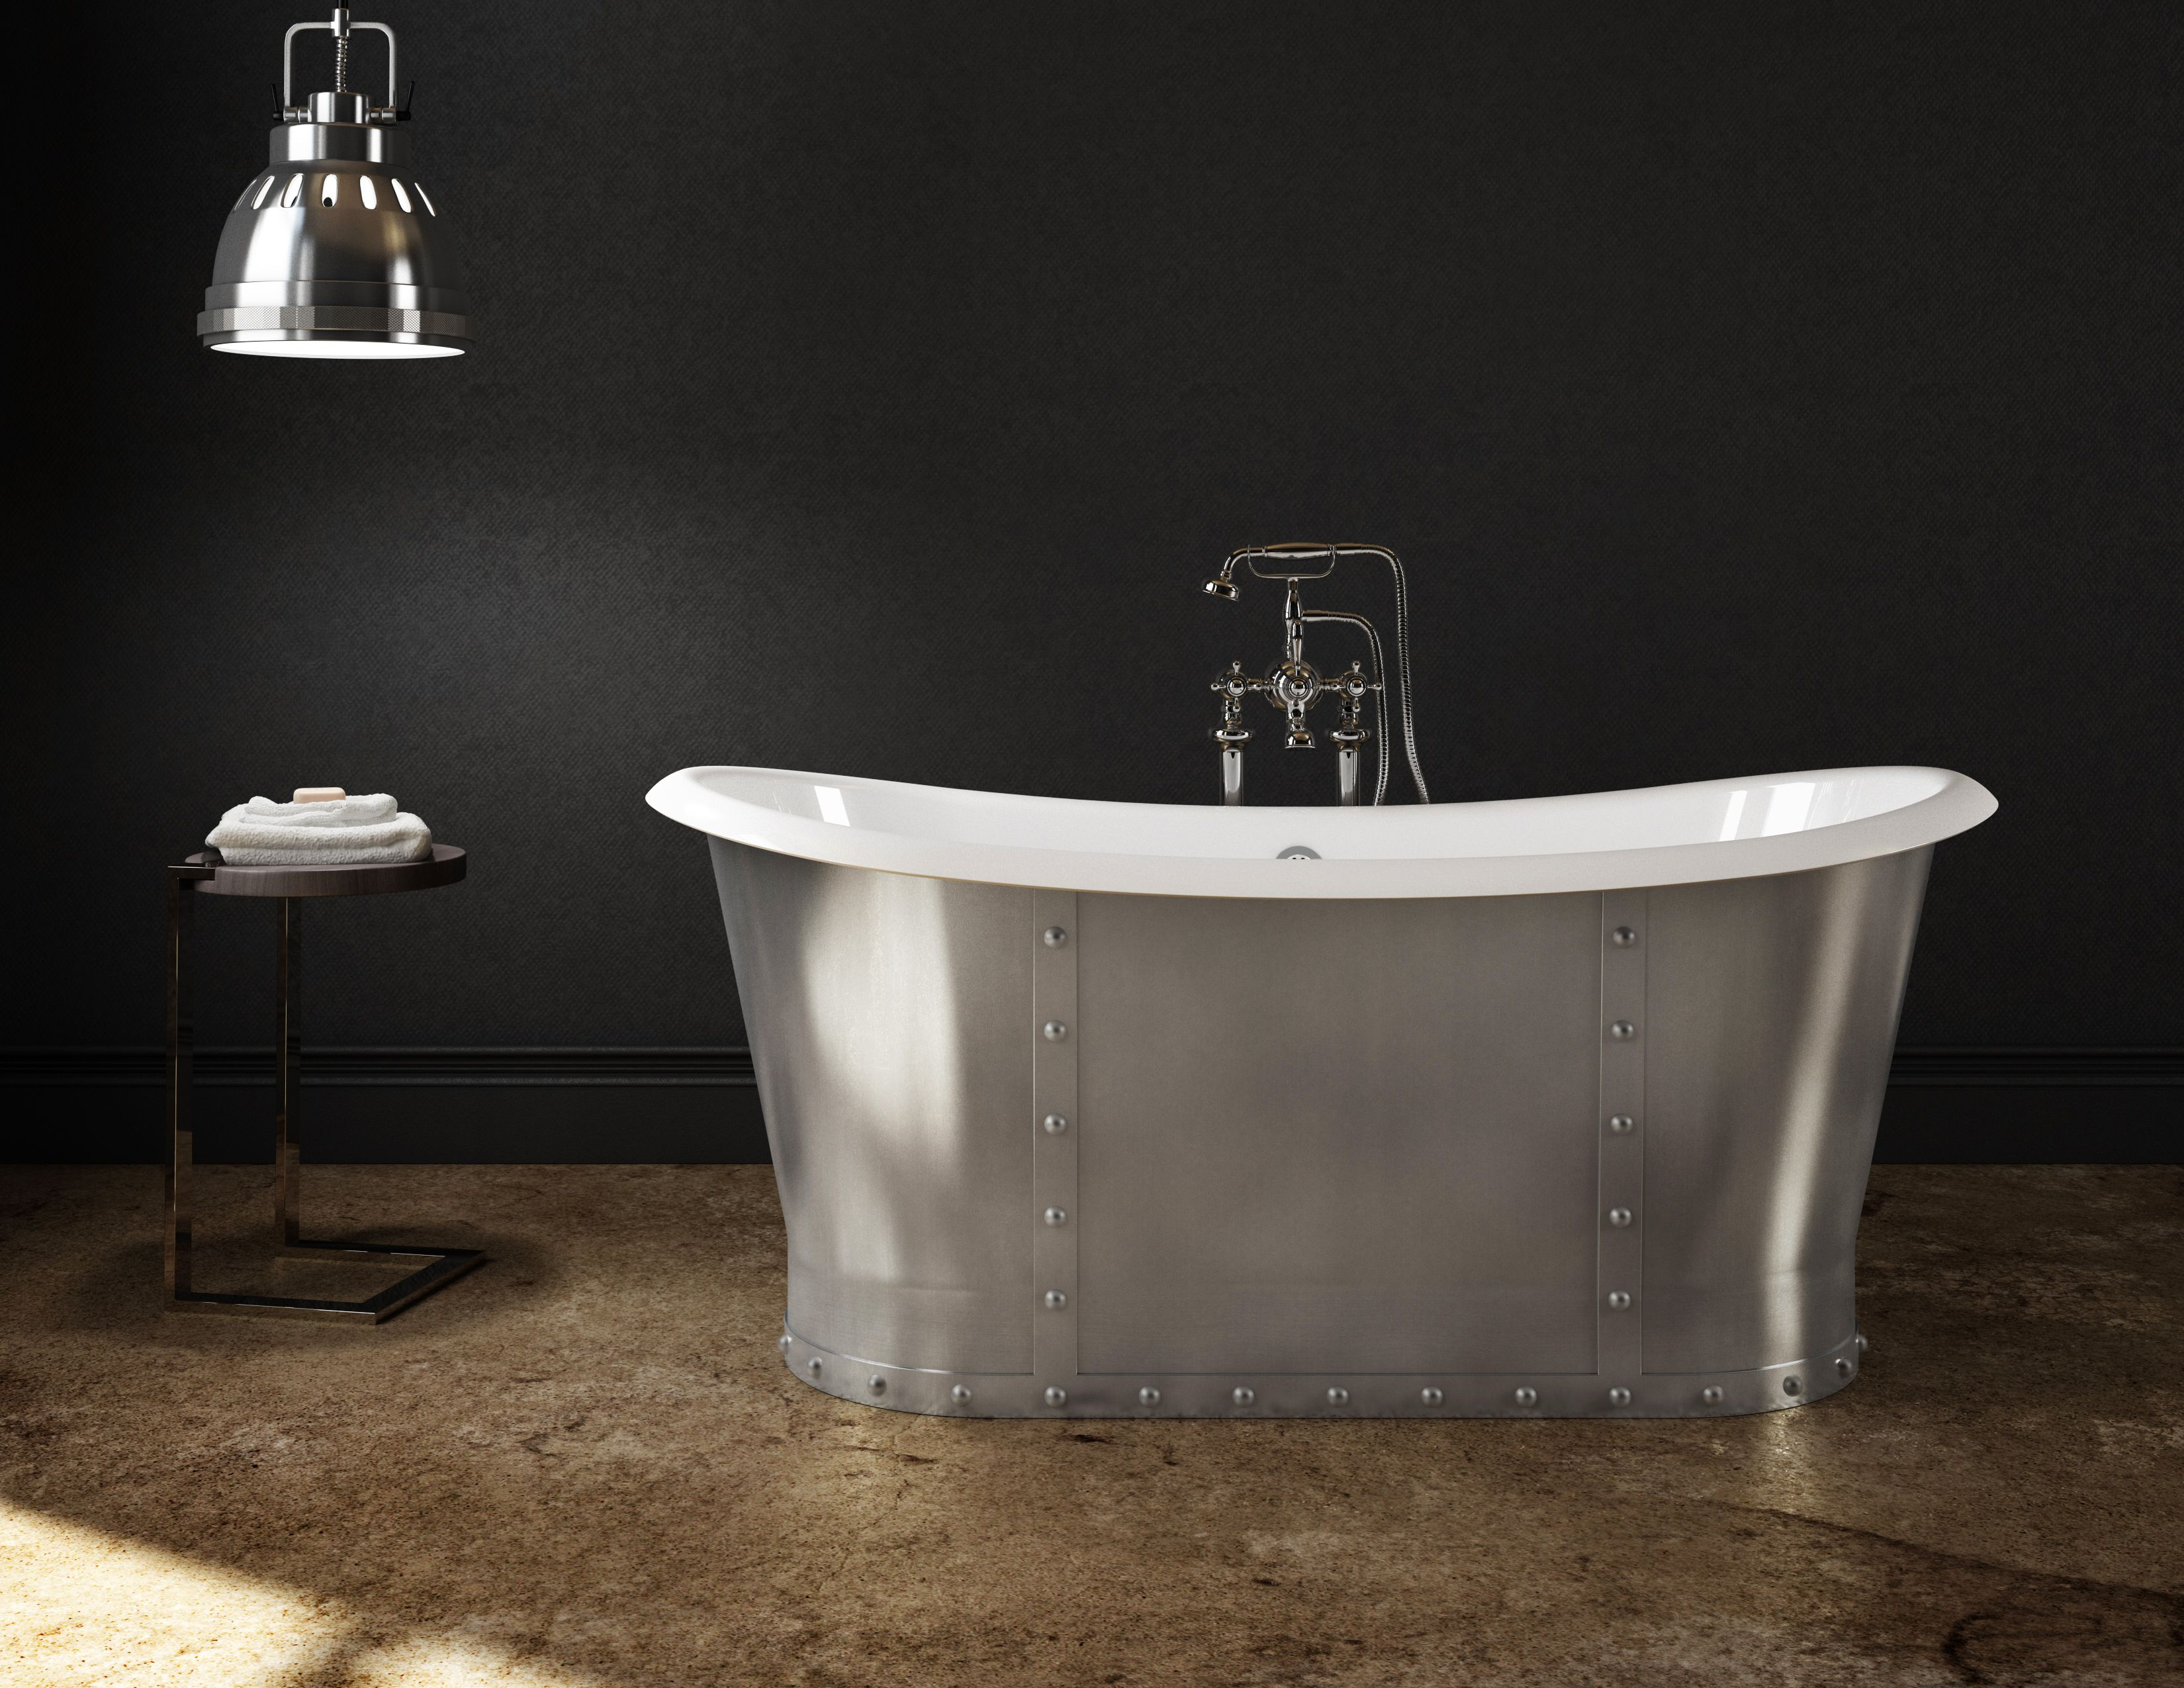 cast iron freestanding bathtub stainless steel skirt baignoire autoportante en fonte avec. Black Bedroom Furniture Sets. Home Design Ideas